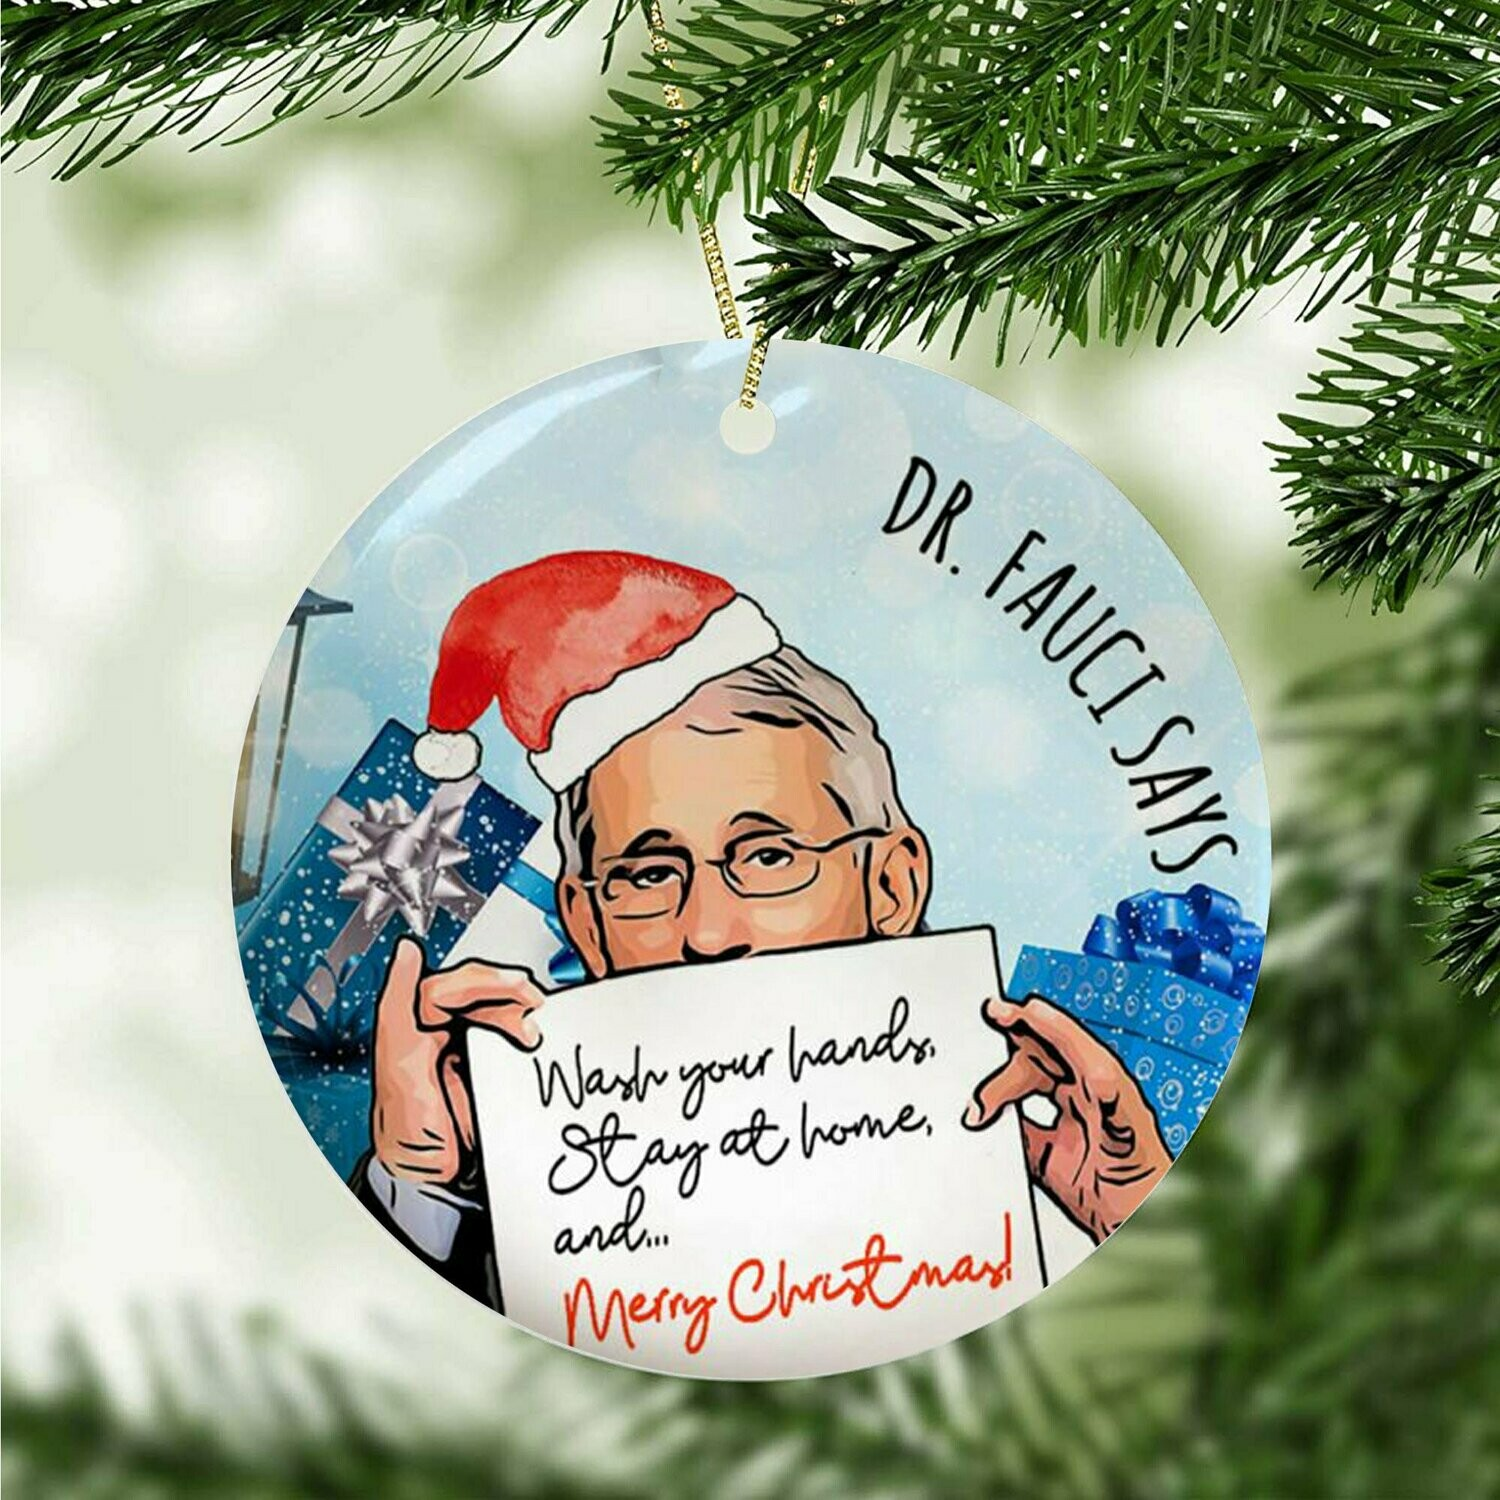 Dr Fauci says Wash your hand and Stay at home Merry Christmas Ornament,Cute Gift Ornament,Gift for Christmas Ornament,Xmas Ornament